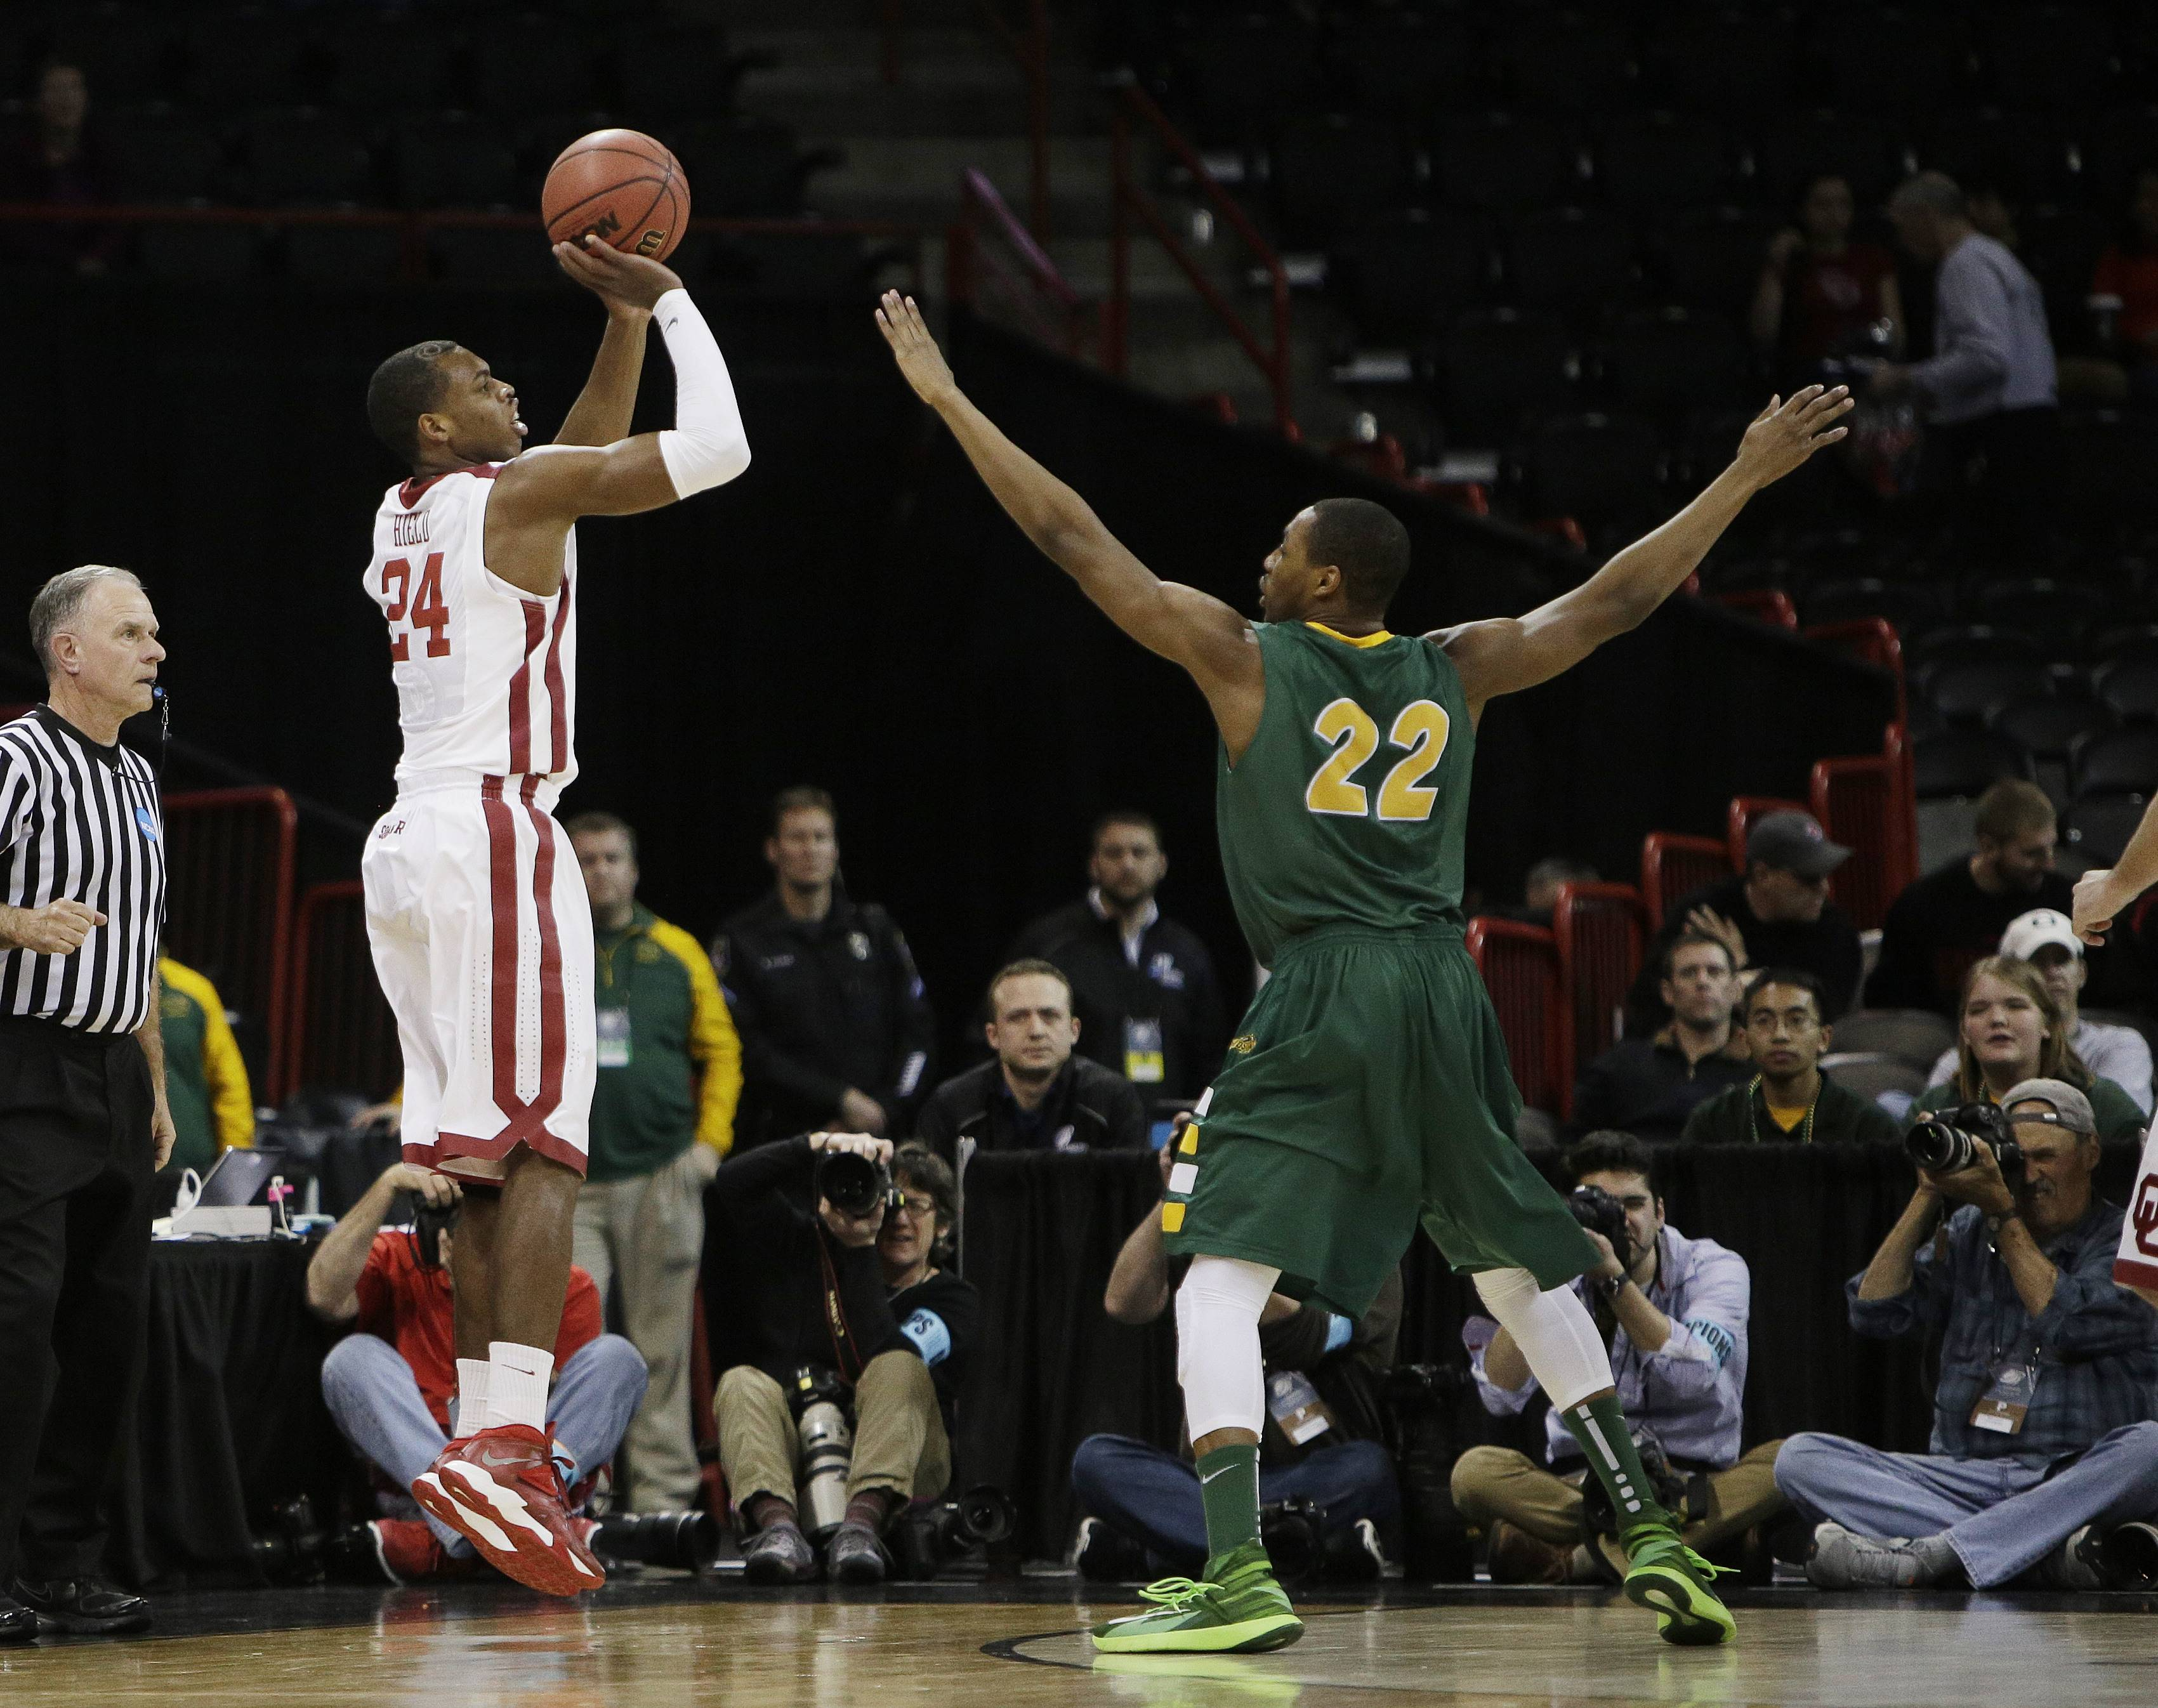 Oklahoma's Buddy Hield (24) shoots as North Dakota State's Kory Brown (22), an Elgin High graduate, defends during a second-round game of the NCAA Tournament in Spokane, Wash., last week.